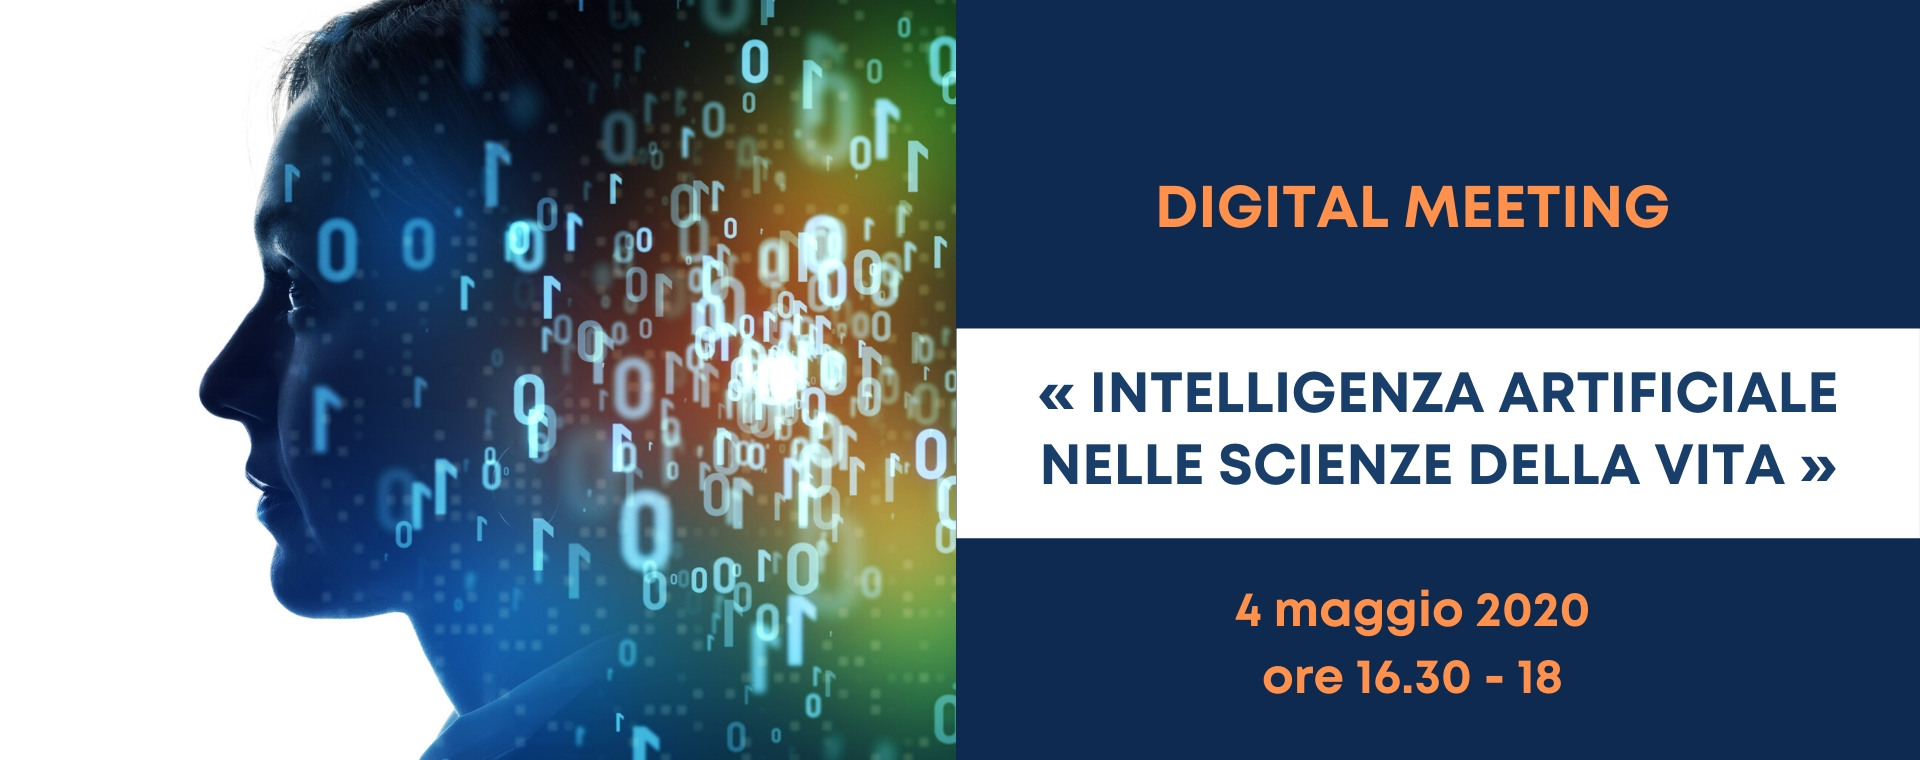 DIGITAL MEETING –  Intelligenza Artificiale nelle Scienze della Vita